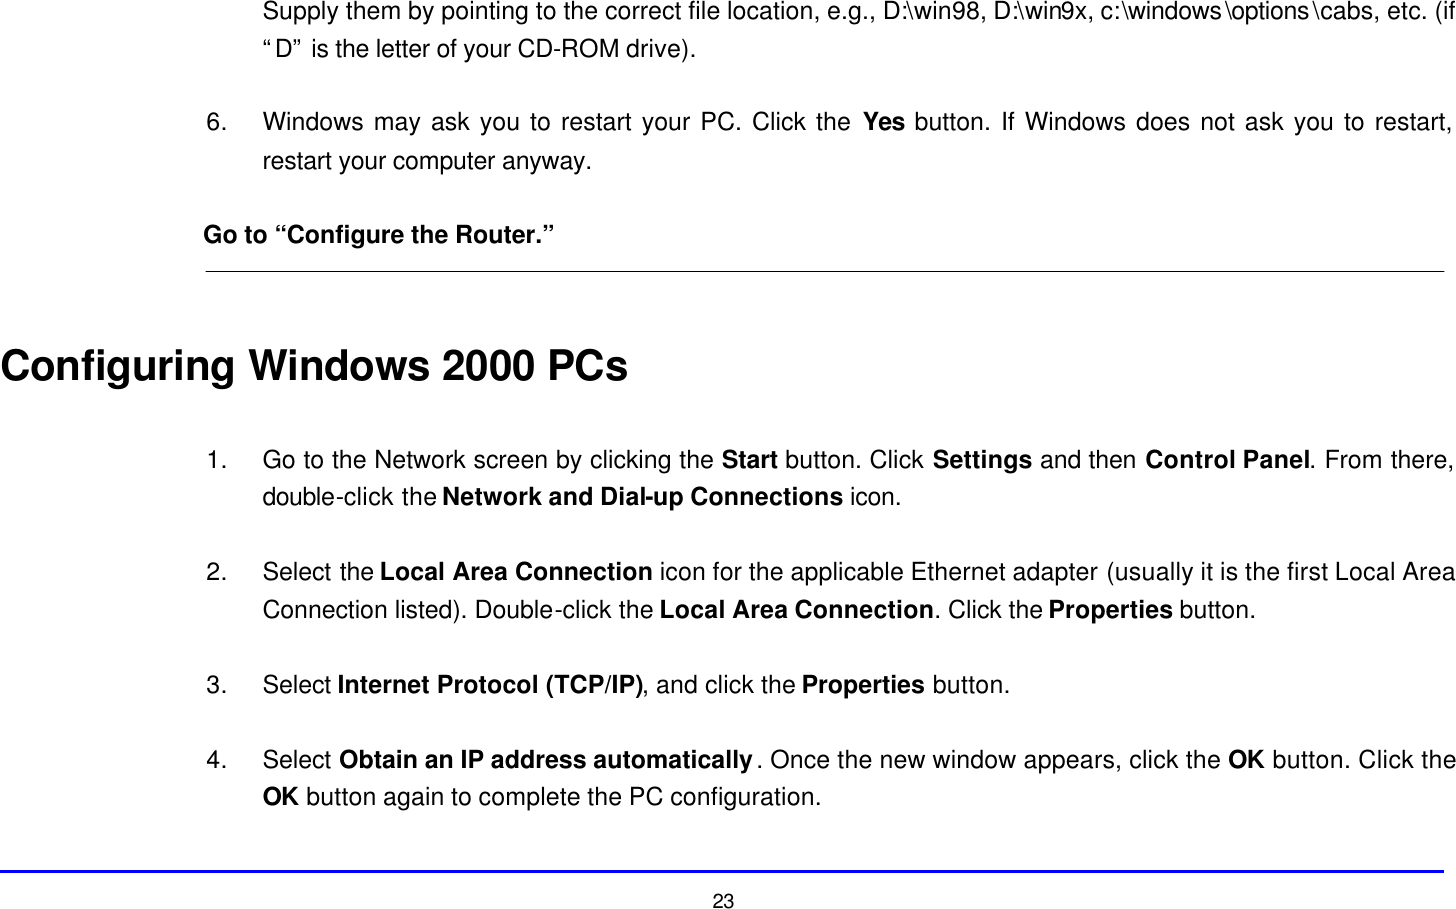 """23 Supply them by pointing to the correct file location, e.g., D:\win98, D:\win9x, c:\windows\options\cabs, etc. (if """"D"""" is the letter of your CD-ROM drive).  6. Windows may ask you to restart your PC. Click the Yes button. If Windows does not ask you to restart, restart your computer anyway.  Go to """"Configure the Router.""""   Configuring Windows 2000 PCs  1. Go to the Network screen by clicking the Start button. Click Settings and then Control Panel. From there, double-click the Network and Dial-up Connections icon.  2. Select the Local Area Connection icon for the applicable Ethernet adapter (usually it is the first Local Area Connection listed). Double-click the Local Area Connection. Click the Properties button.  3. Select Internet Protocol (TCP/IP), and click the Properties button.  4. Select Obtain an IP address automatically. Once the new window appears, click the OK button. Click the OK button again to complete the PC configuration."""